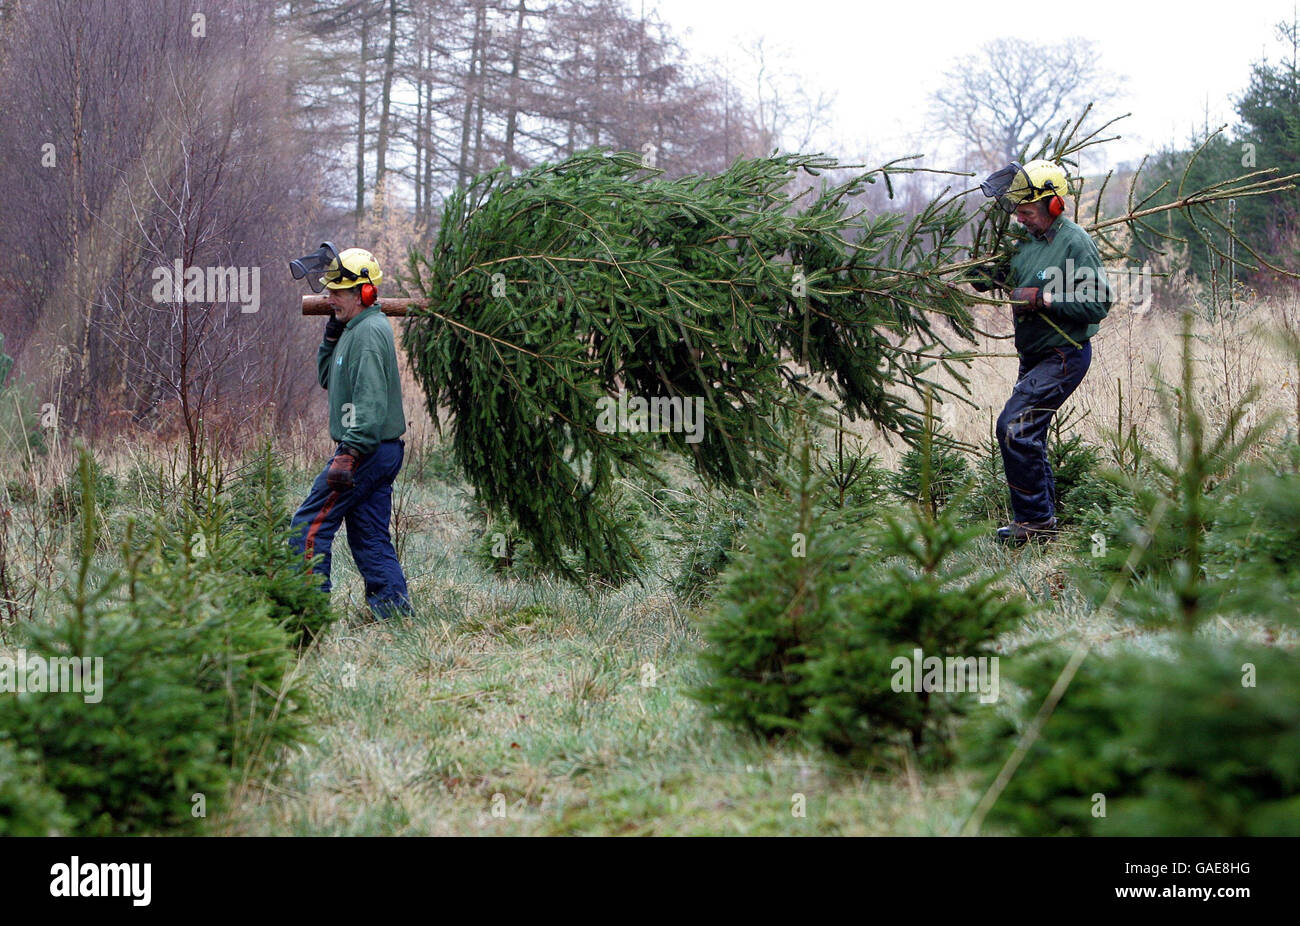 Christmas Trees Being Cut Down Stock Photo Royalty Free Image  - Christmas Trees To Cut Down